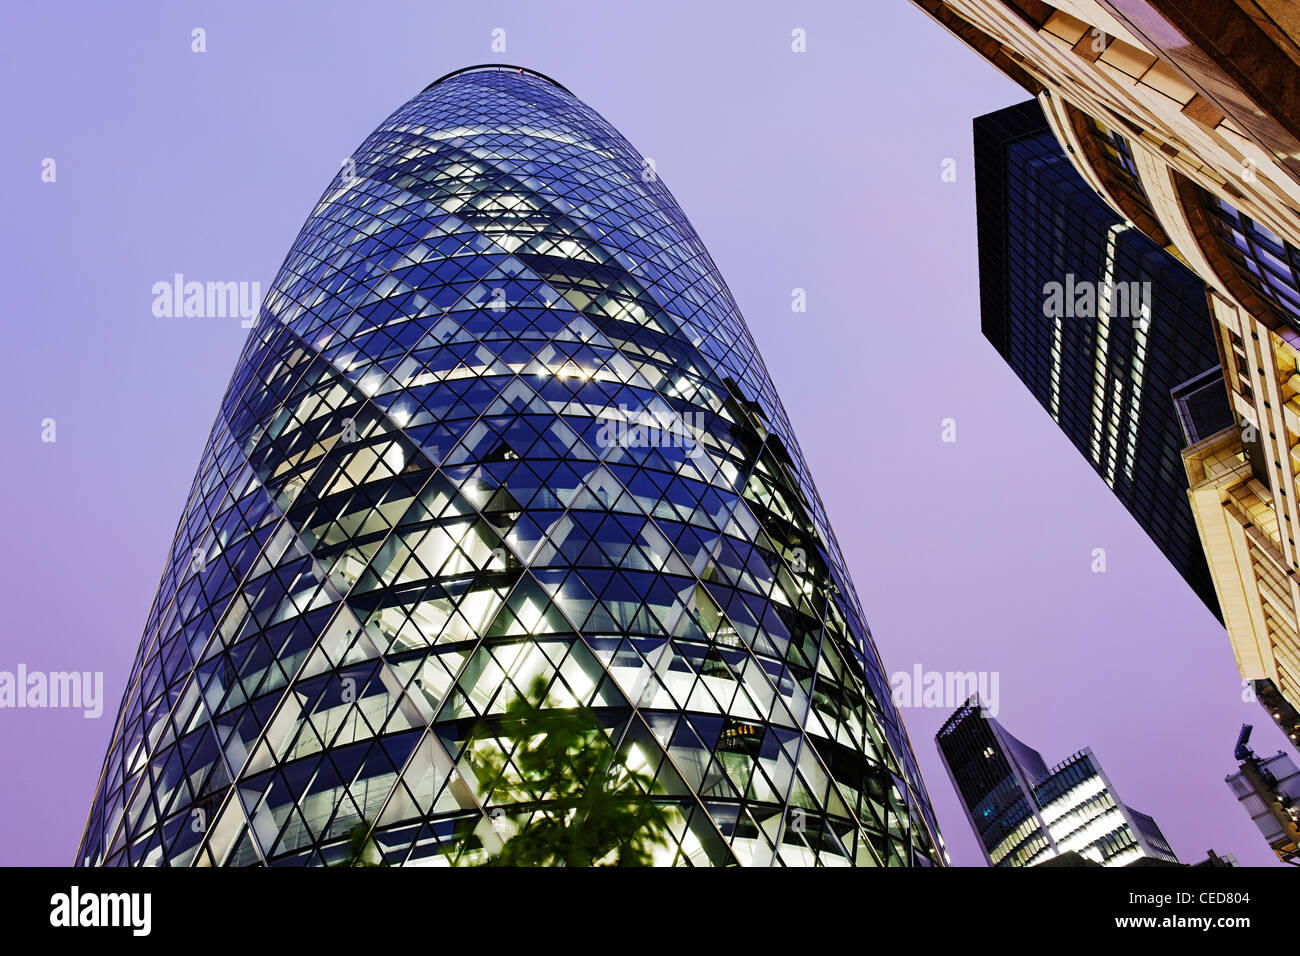 mixed architecture, twilight, modern and classical architecture, Swiss Re Tower, The Gherkin Tower, London, England - Stock Image